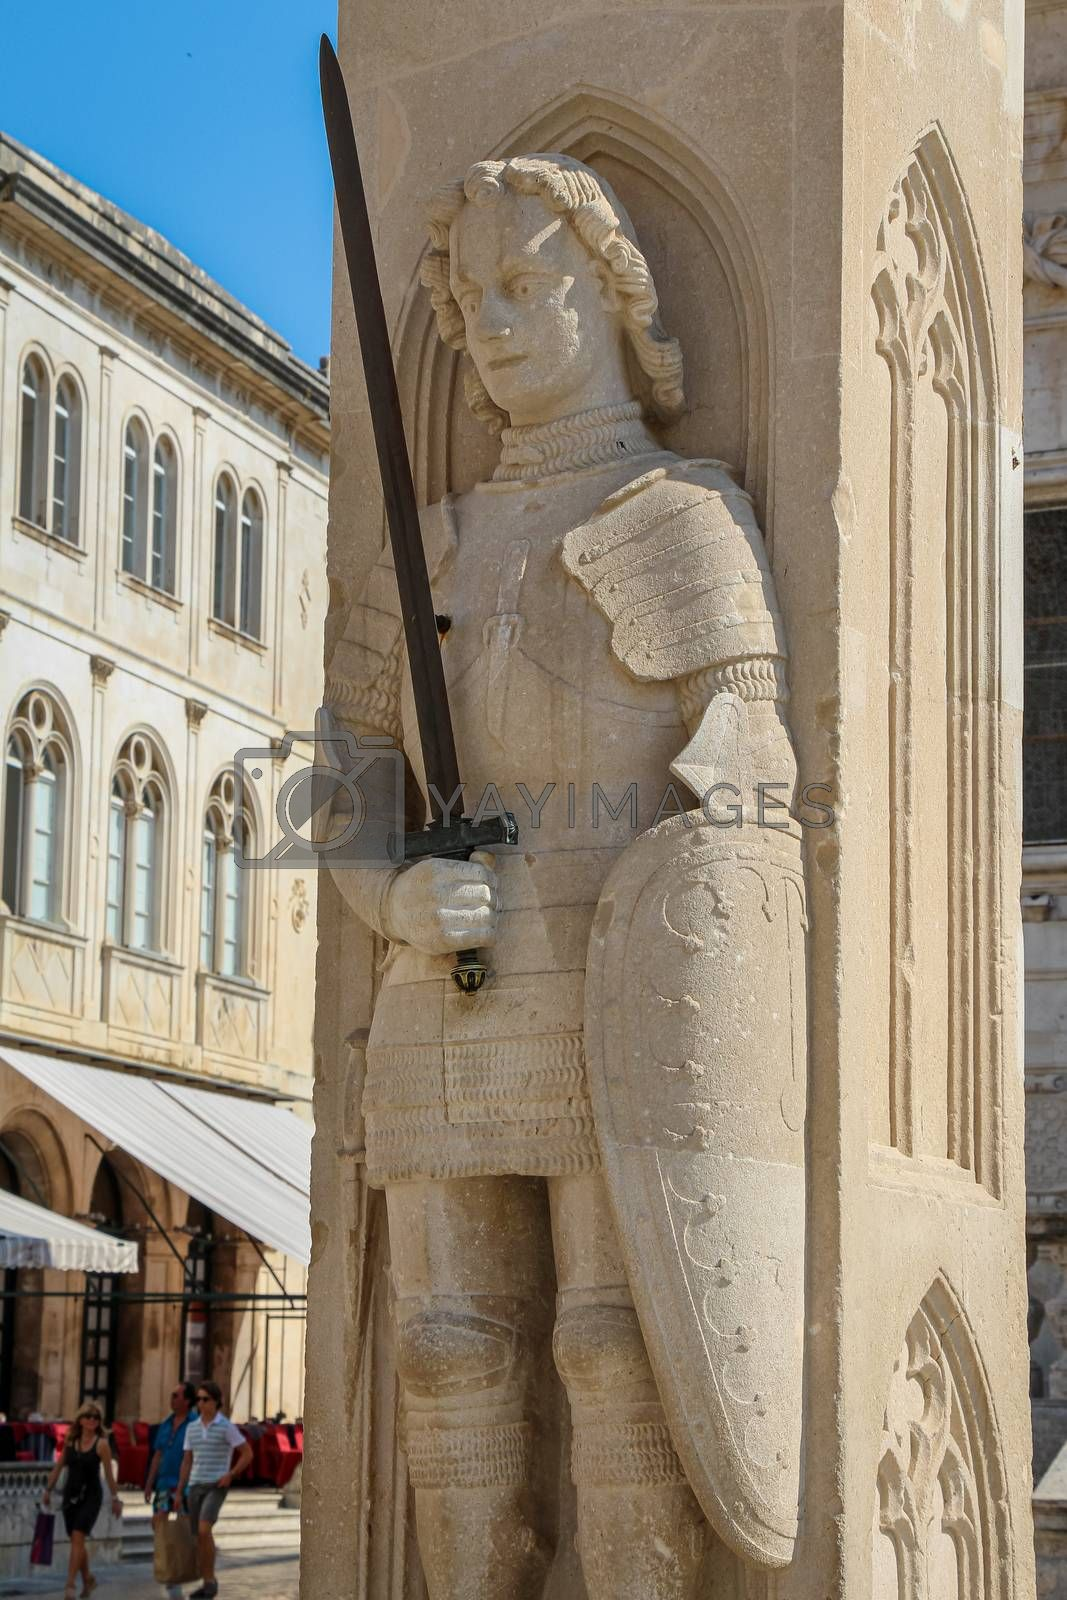 Dubrovnik, Croatia - July 15th 2018: Orlando's Column Statue at the Church of Saint Blaise, in the old town in Dubrovnik, Croatia